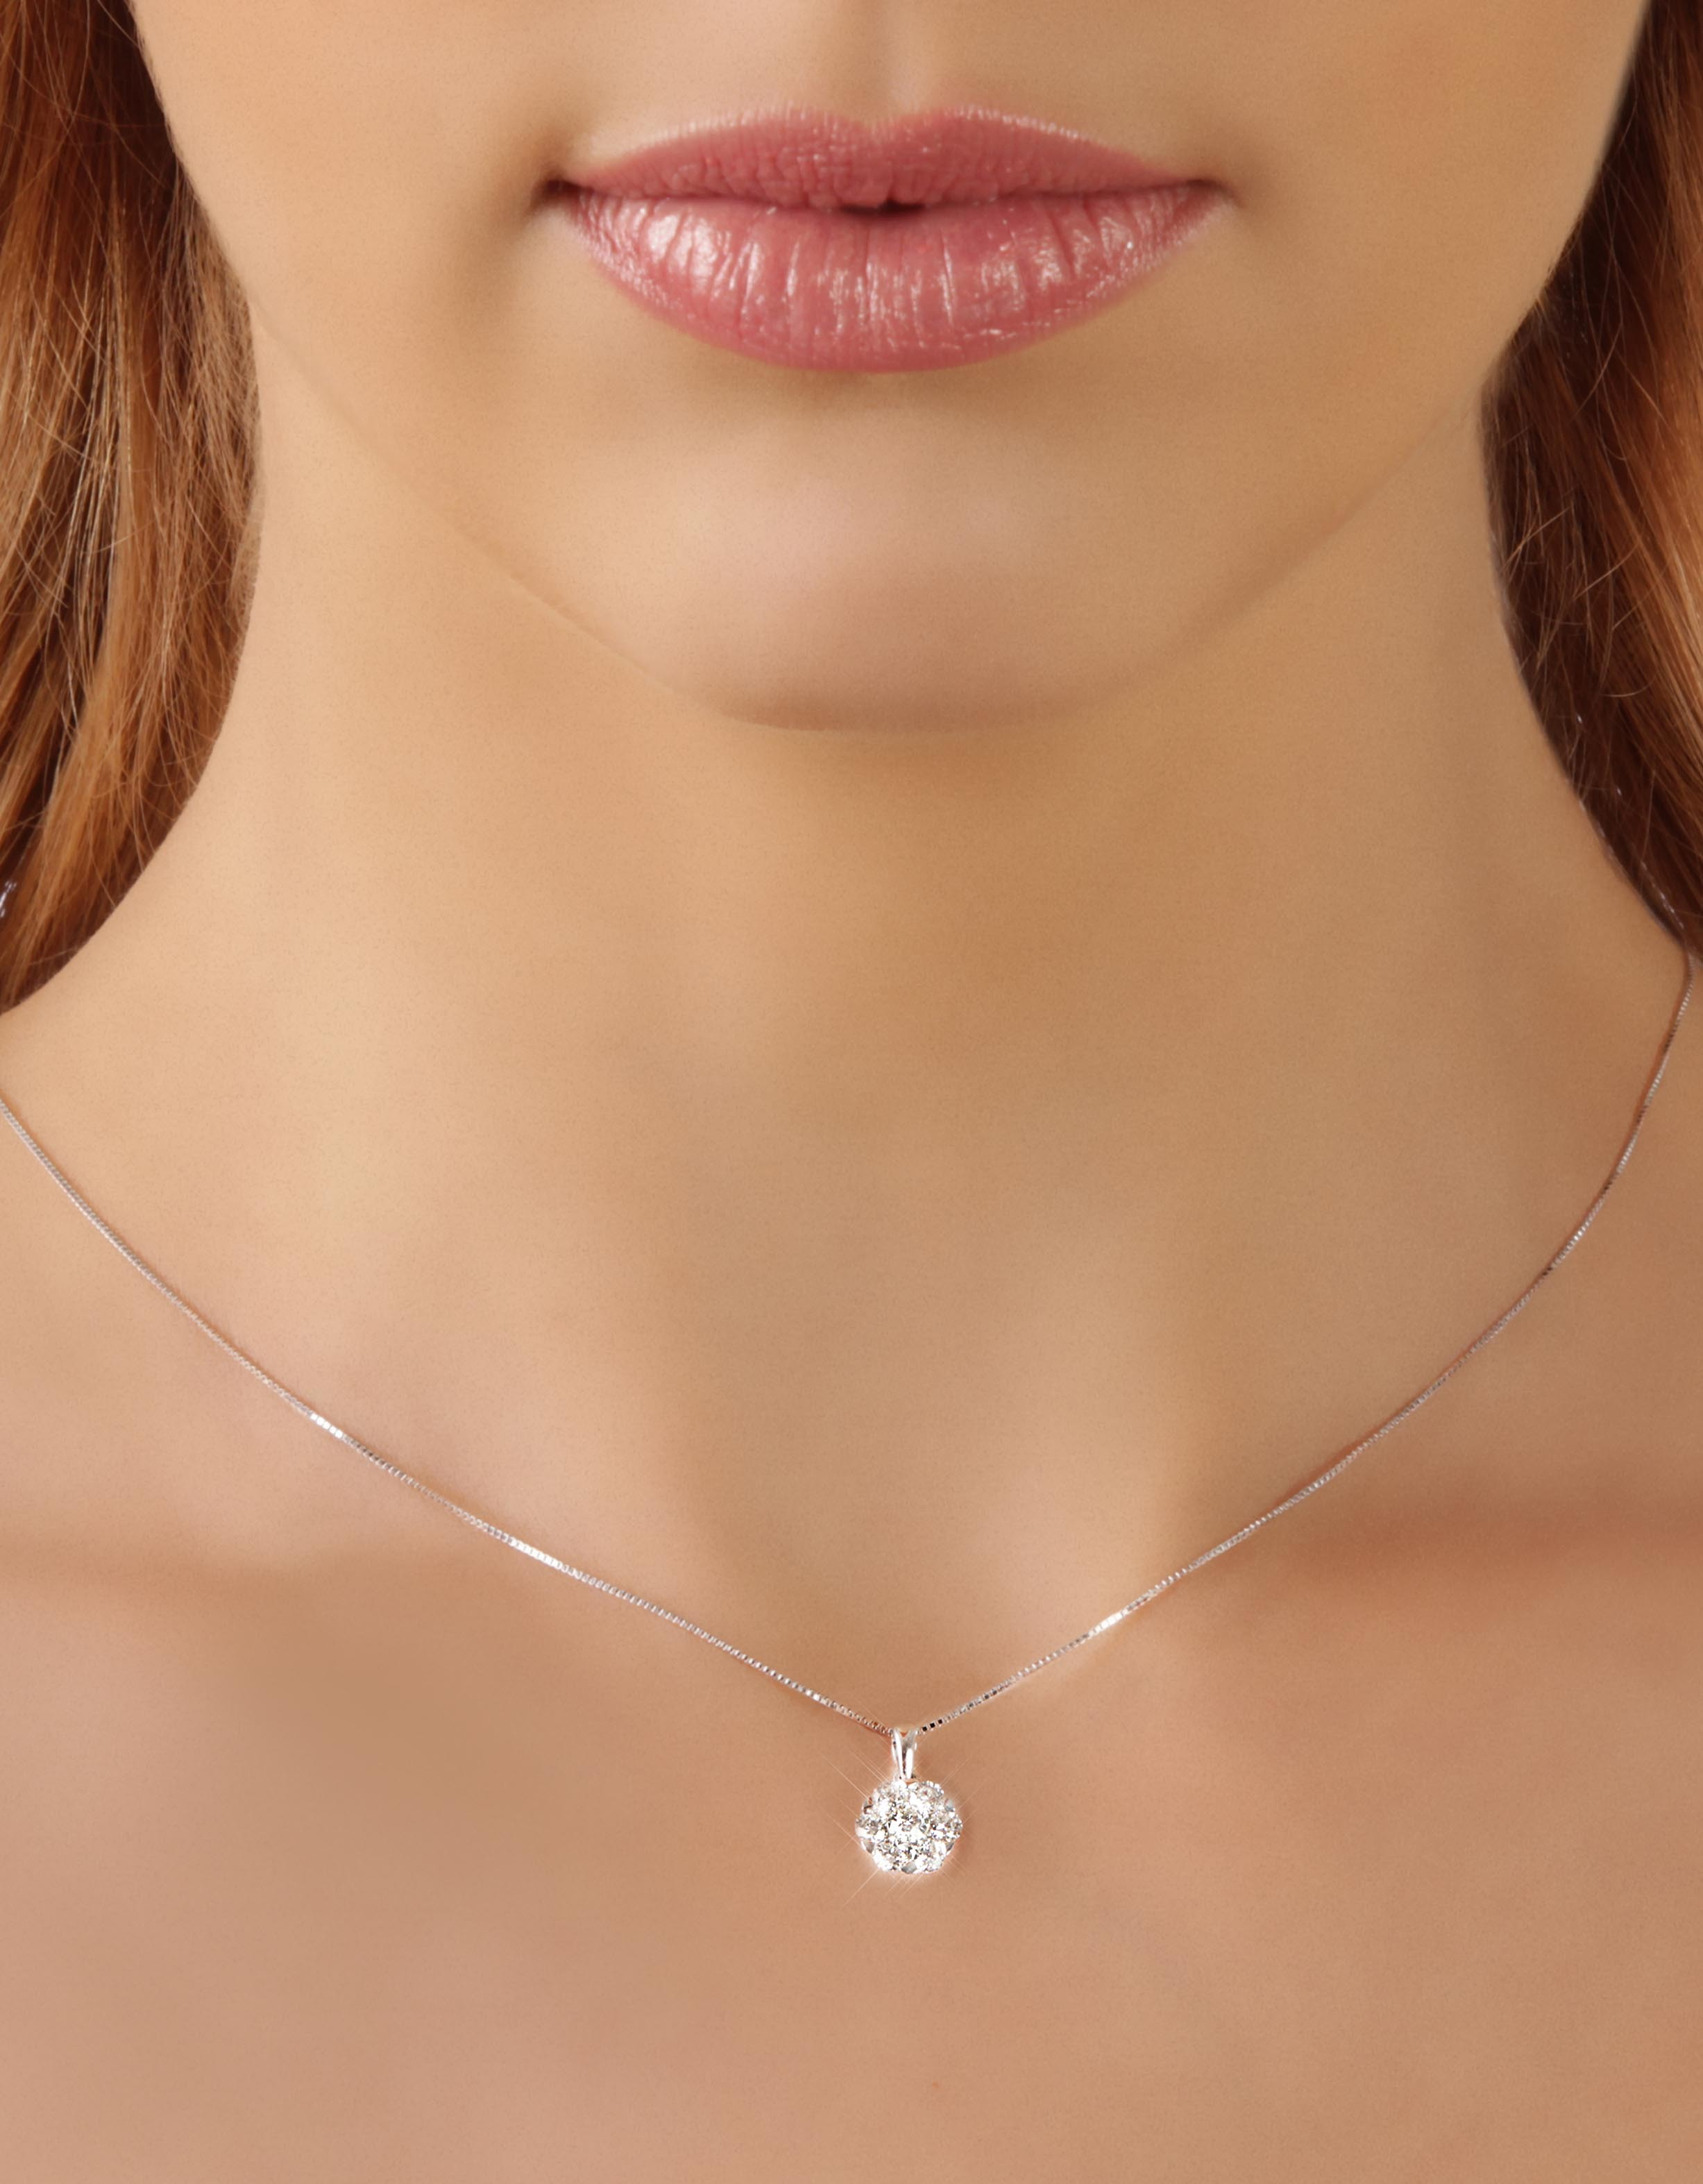 floating as diamond new on seen cz kelly breakpoint solitaire necklace me silver sterling